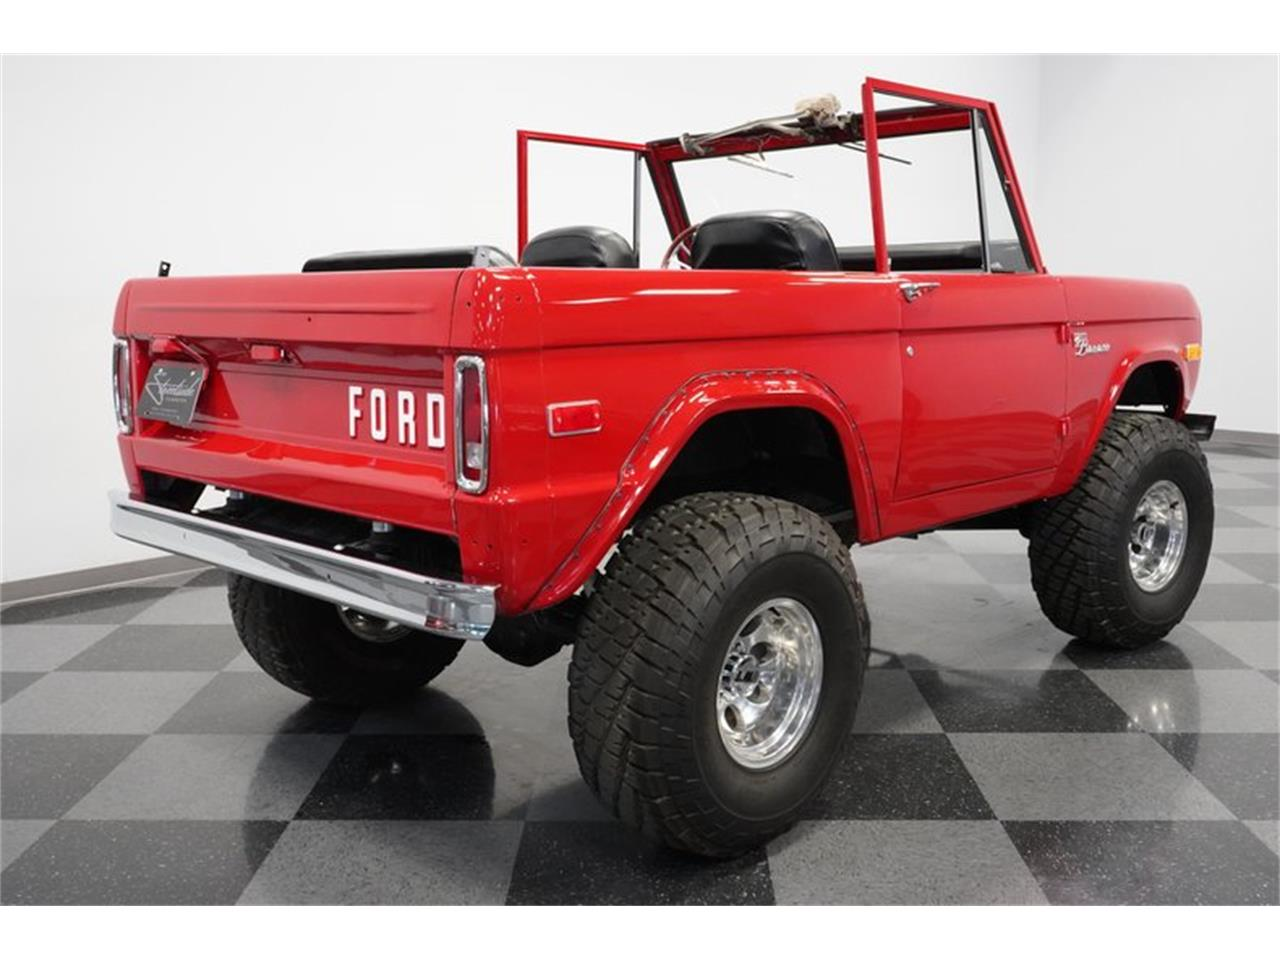 Large Picture of '75 Ford Bronco located in Arizona Offered by Streetside Classics - Phoenix - Q516